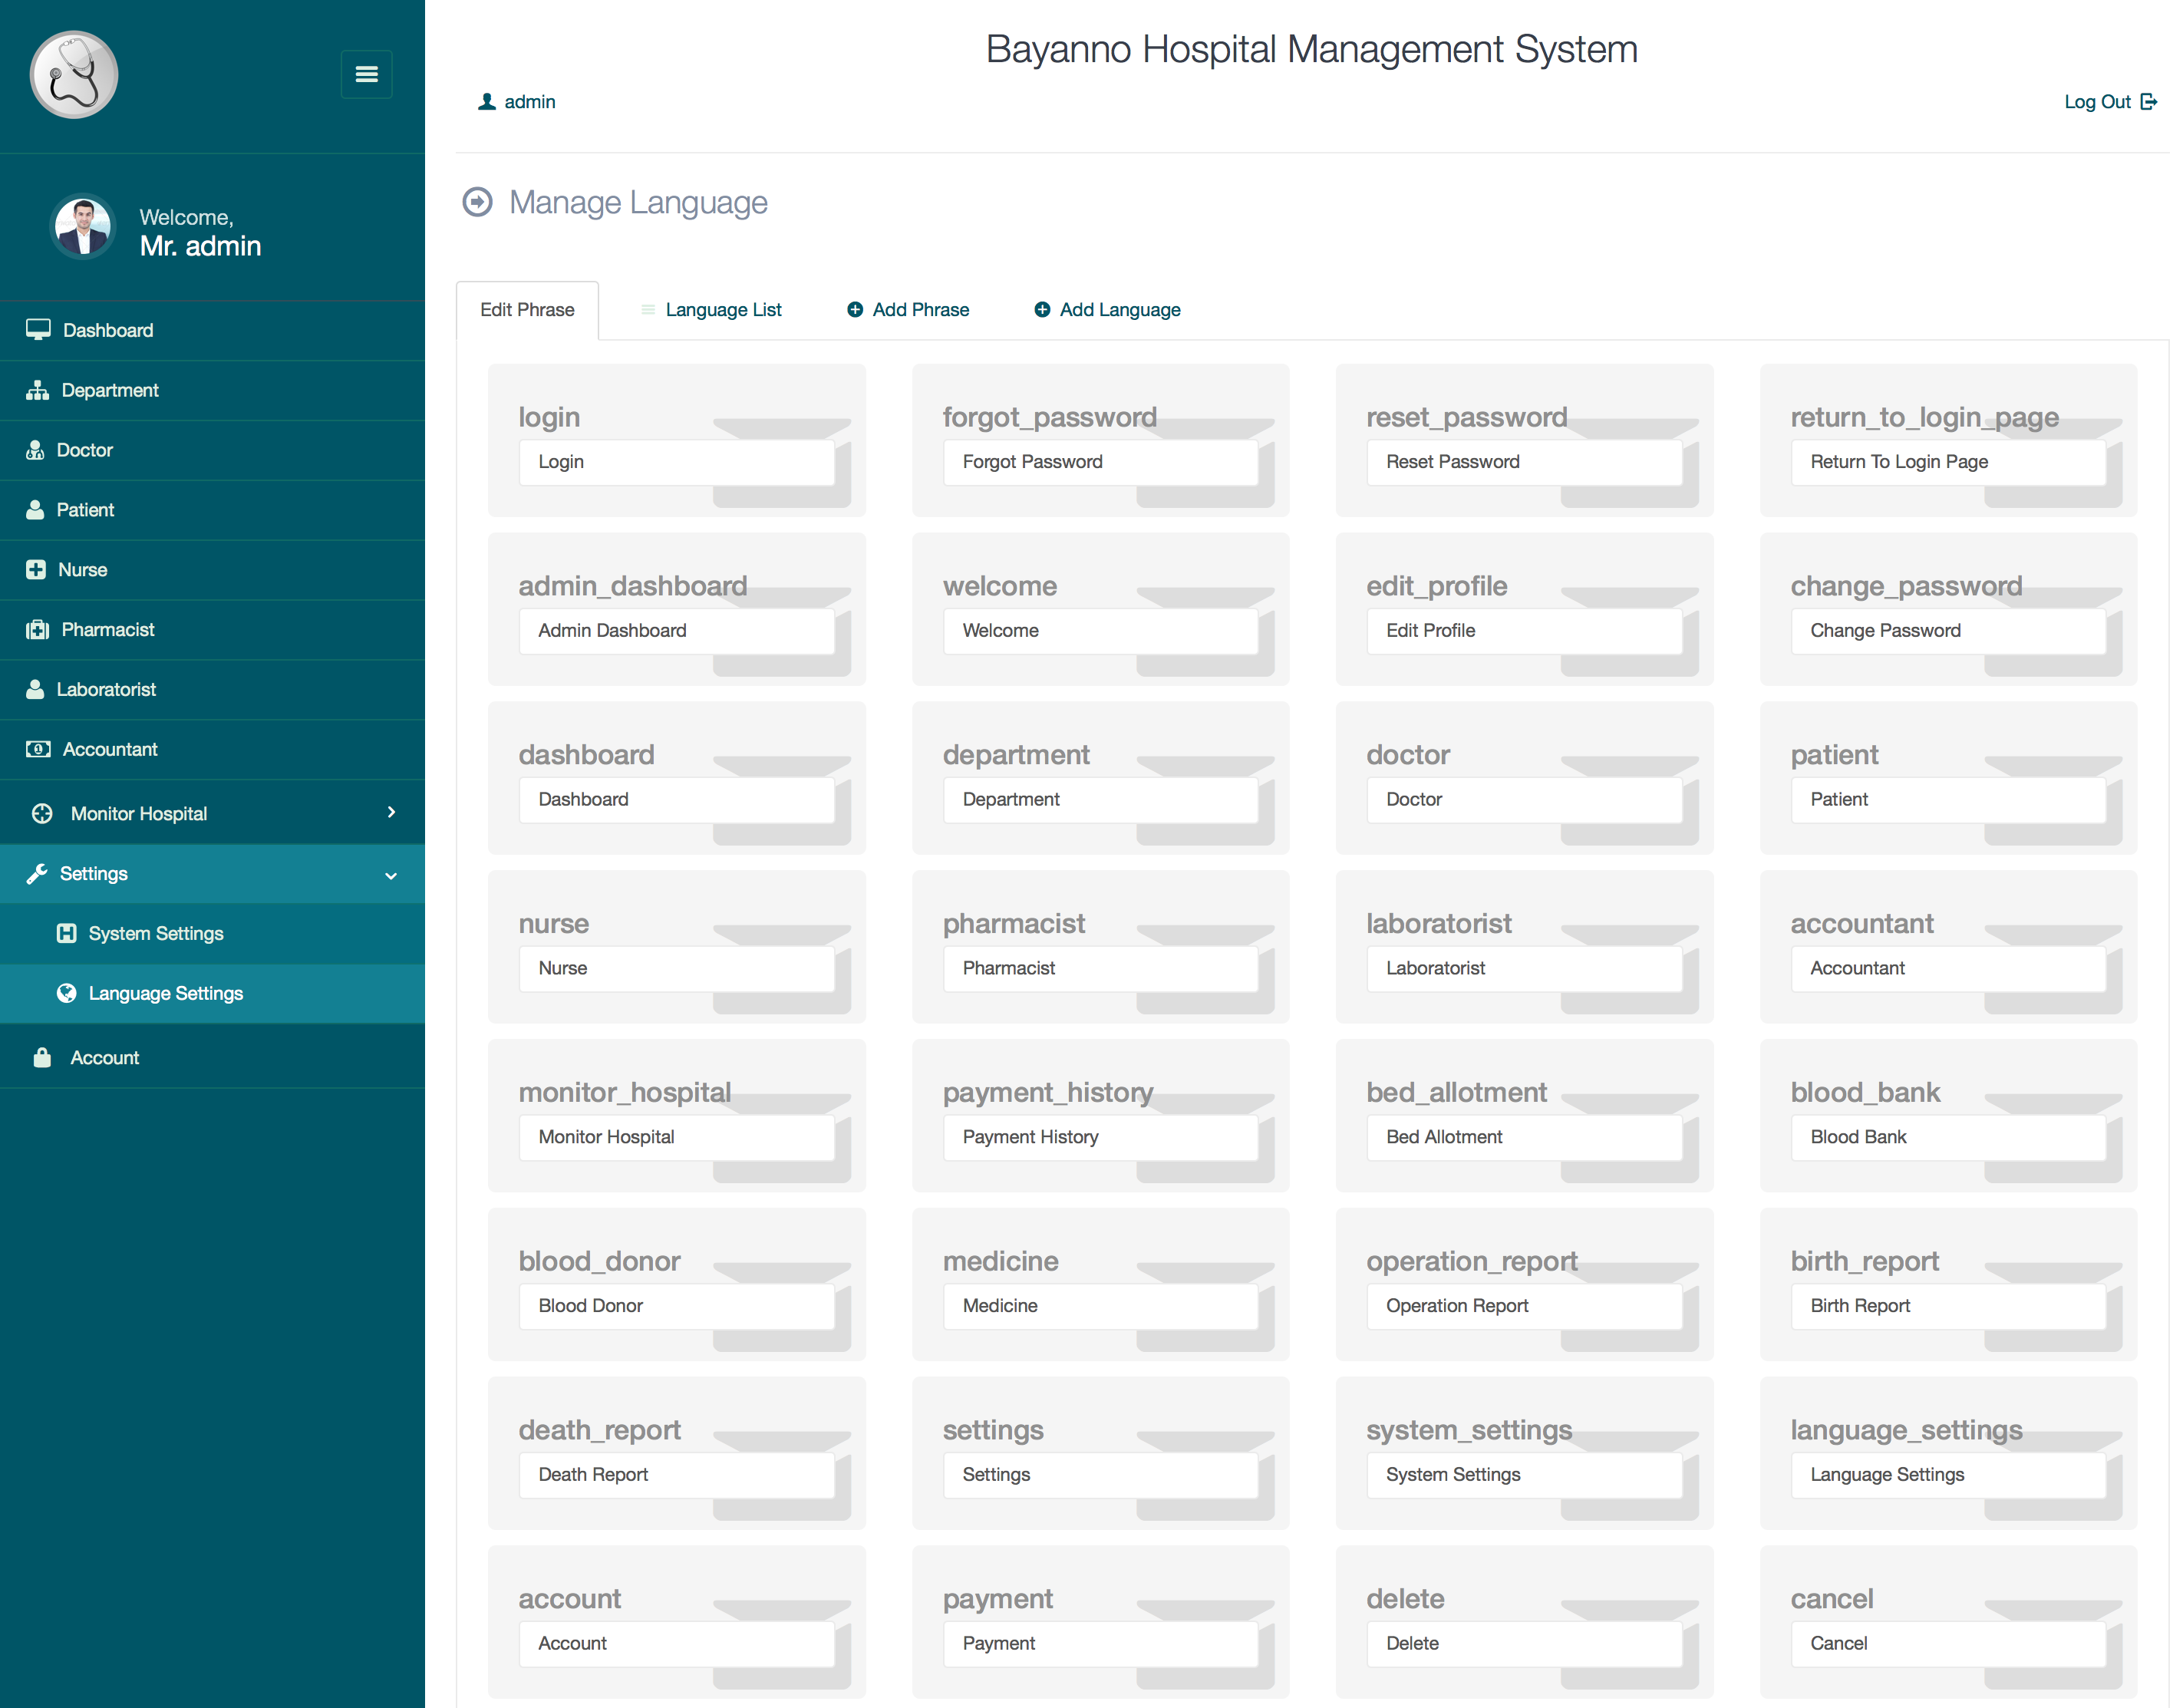 Admin_manage - Preview_images Admin_dashboard Png Preview_images Admin_manage_department Png Preview_images Admin_manage_doctor Png